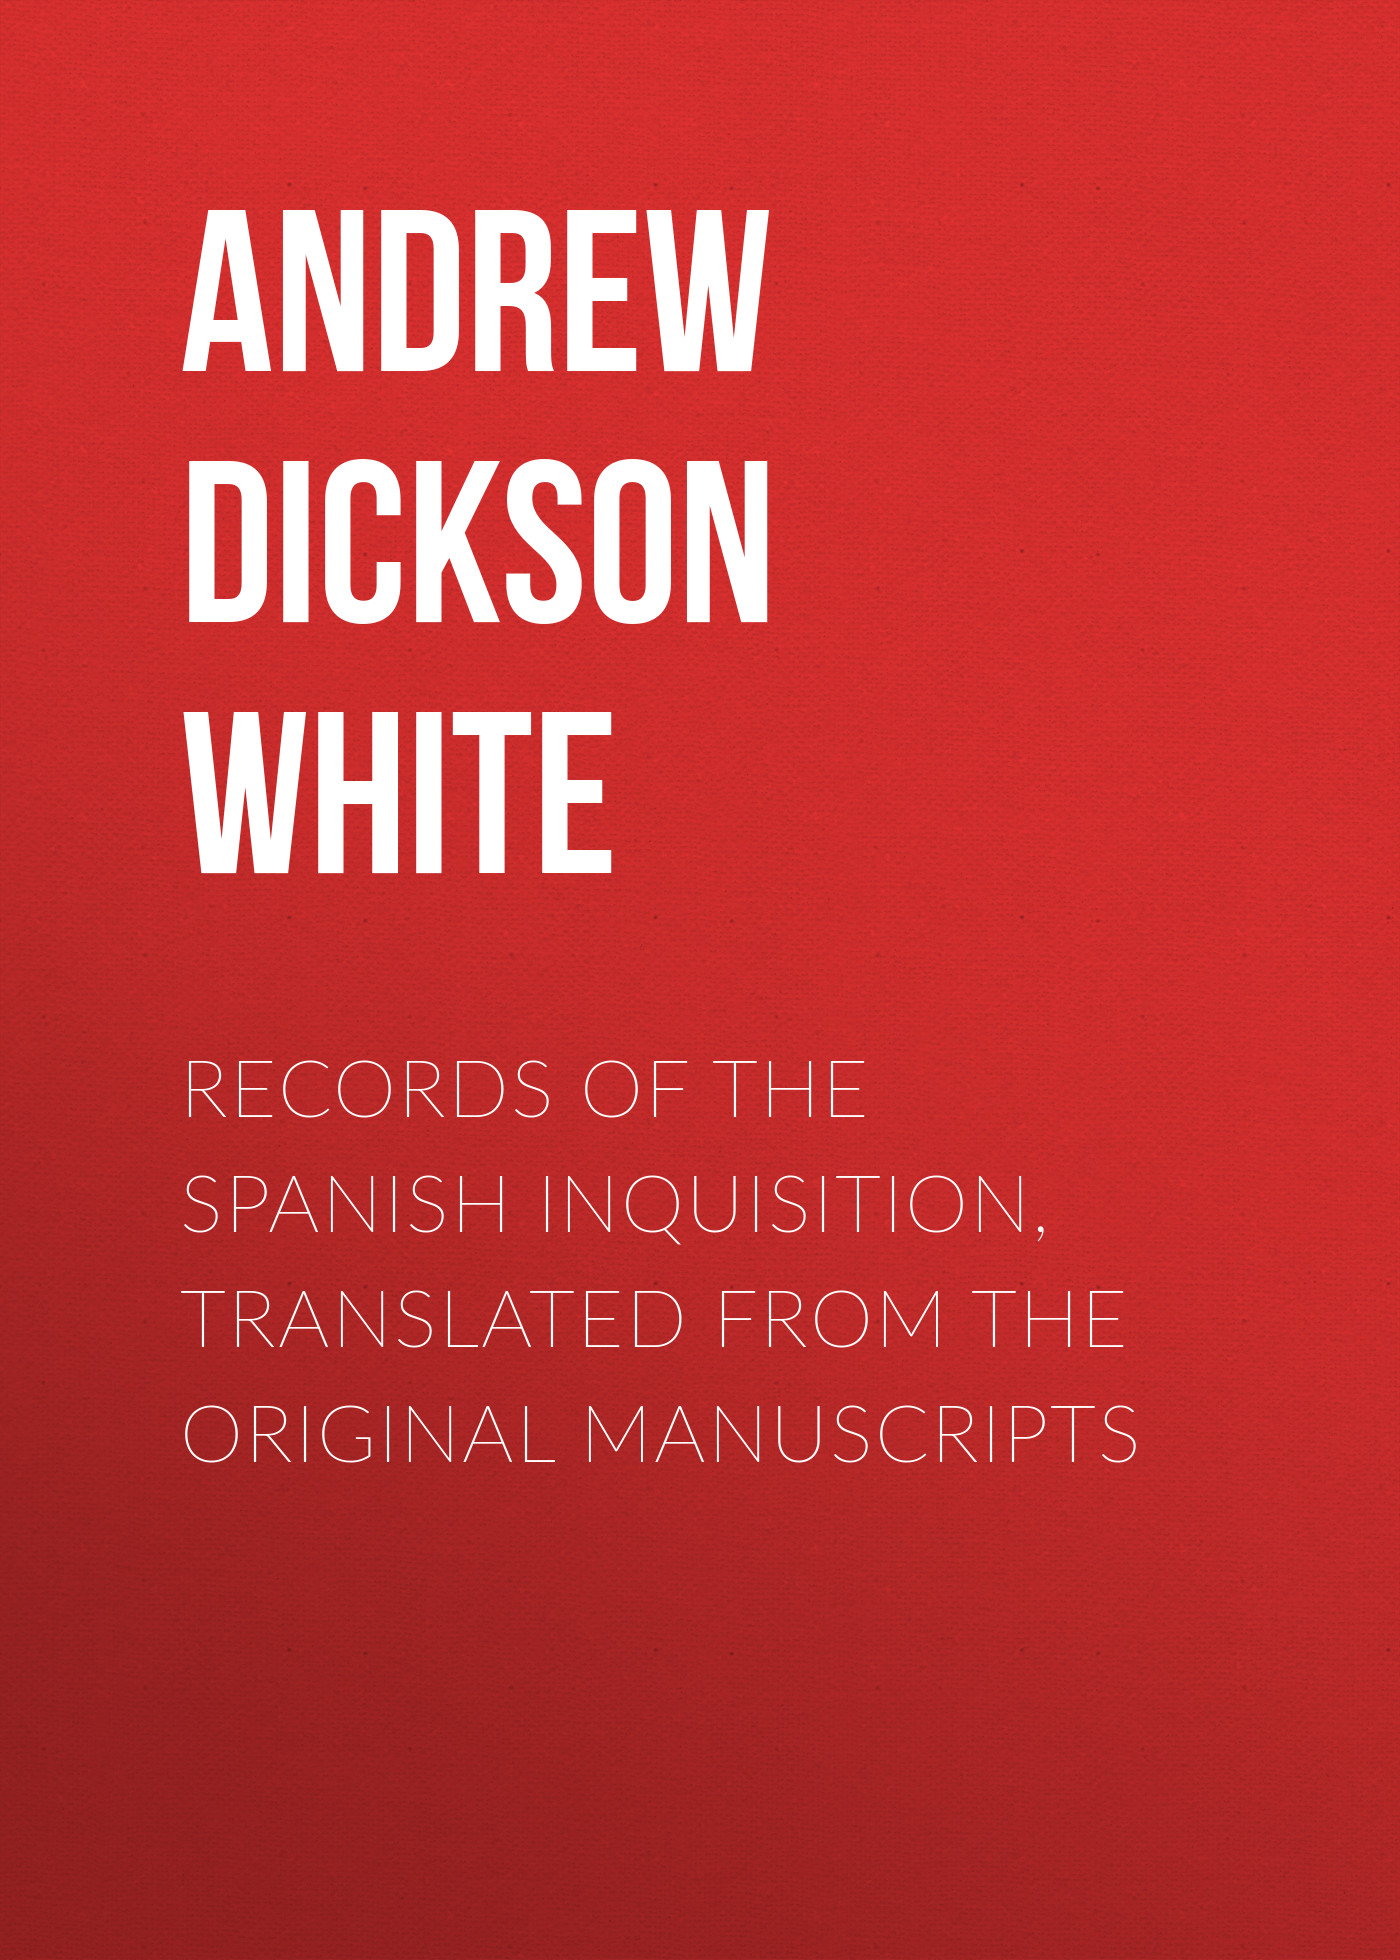 Andrew Dickson White Records of the Spanish Inquisition, Translated from the Original Manuscripts шайба diffusor sh30 6m